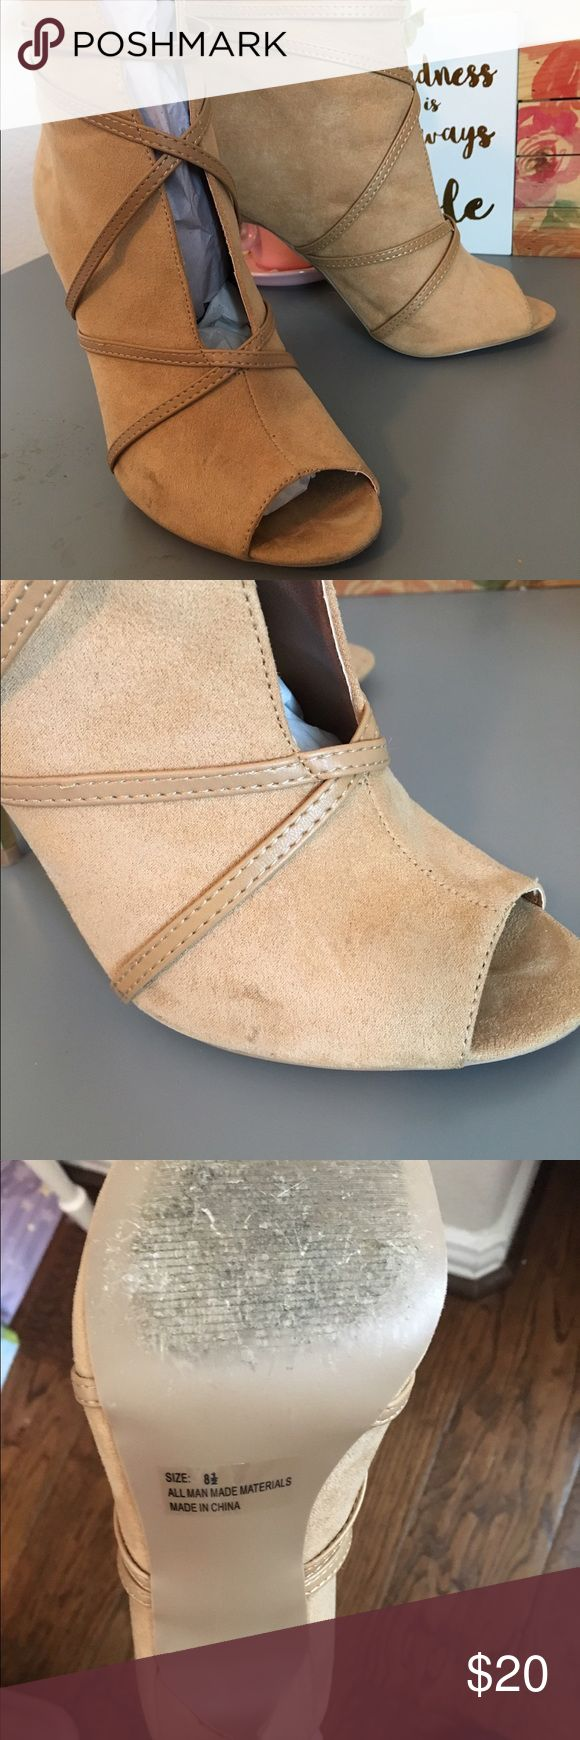 """Peep Toe Bootie ARA-78 Qupid Toffee Suede PU   MATERIAL: MAN- MADE, LEATHERETTE.  MEASUREMENT : HEEL HEIGHT: 4.25"""" (APPROX)  SOLE: SYNTHETIC  FITTING : TRUE TO SIZE Qupid Shoes Ankle Boots & Booties"""